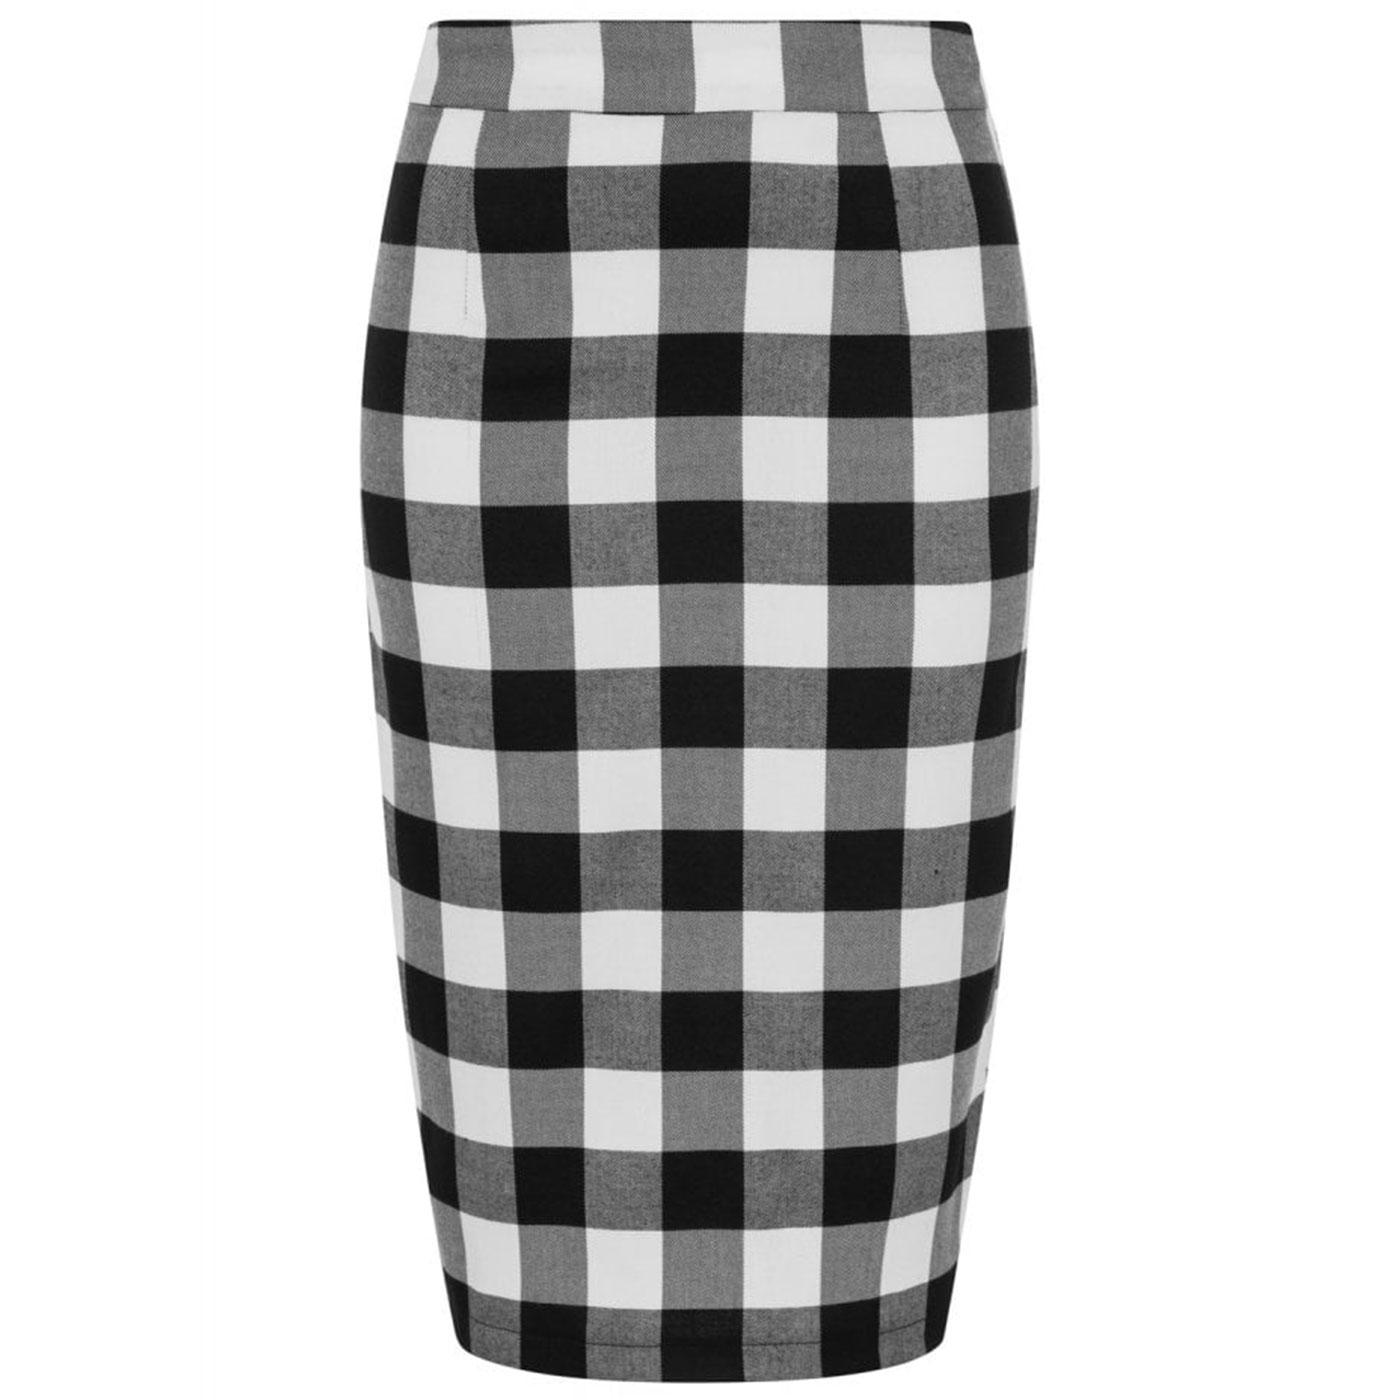 Polly COLLECTIF 50s Gingham Pencil Skirt Blk/Wht